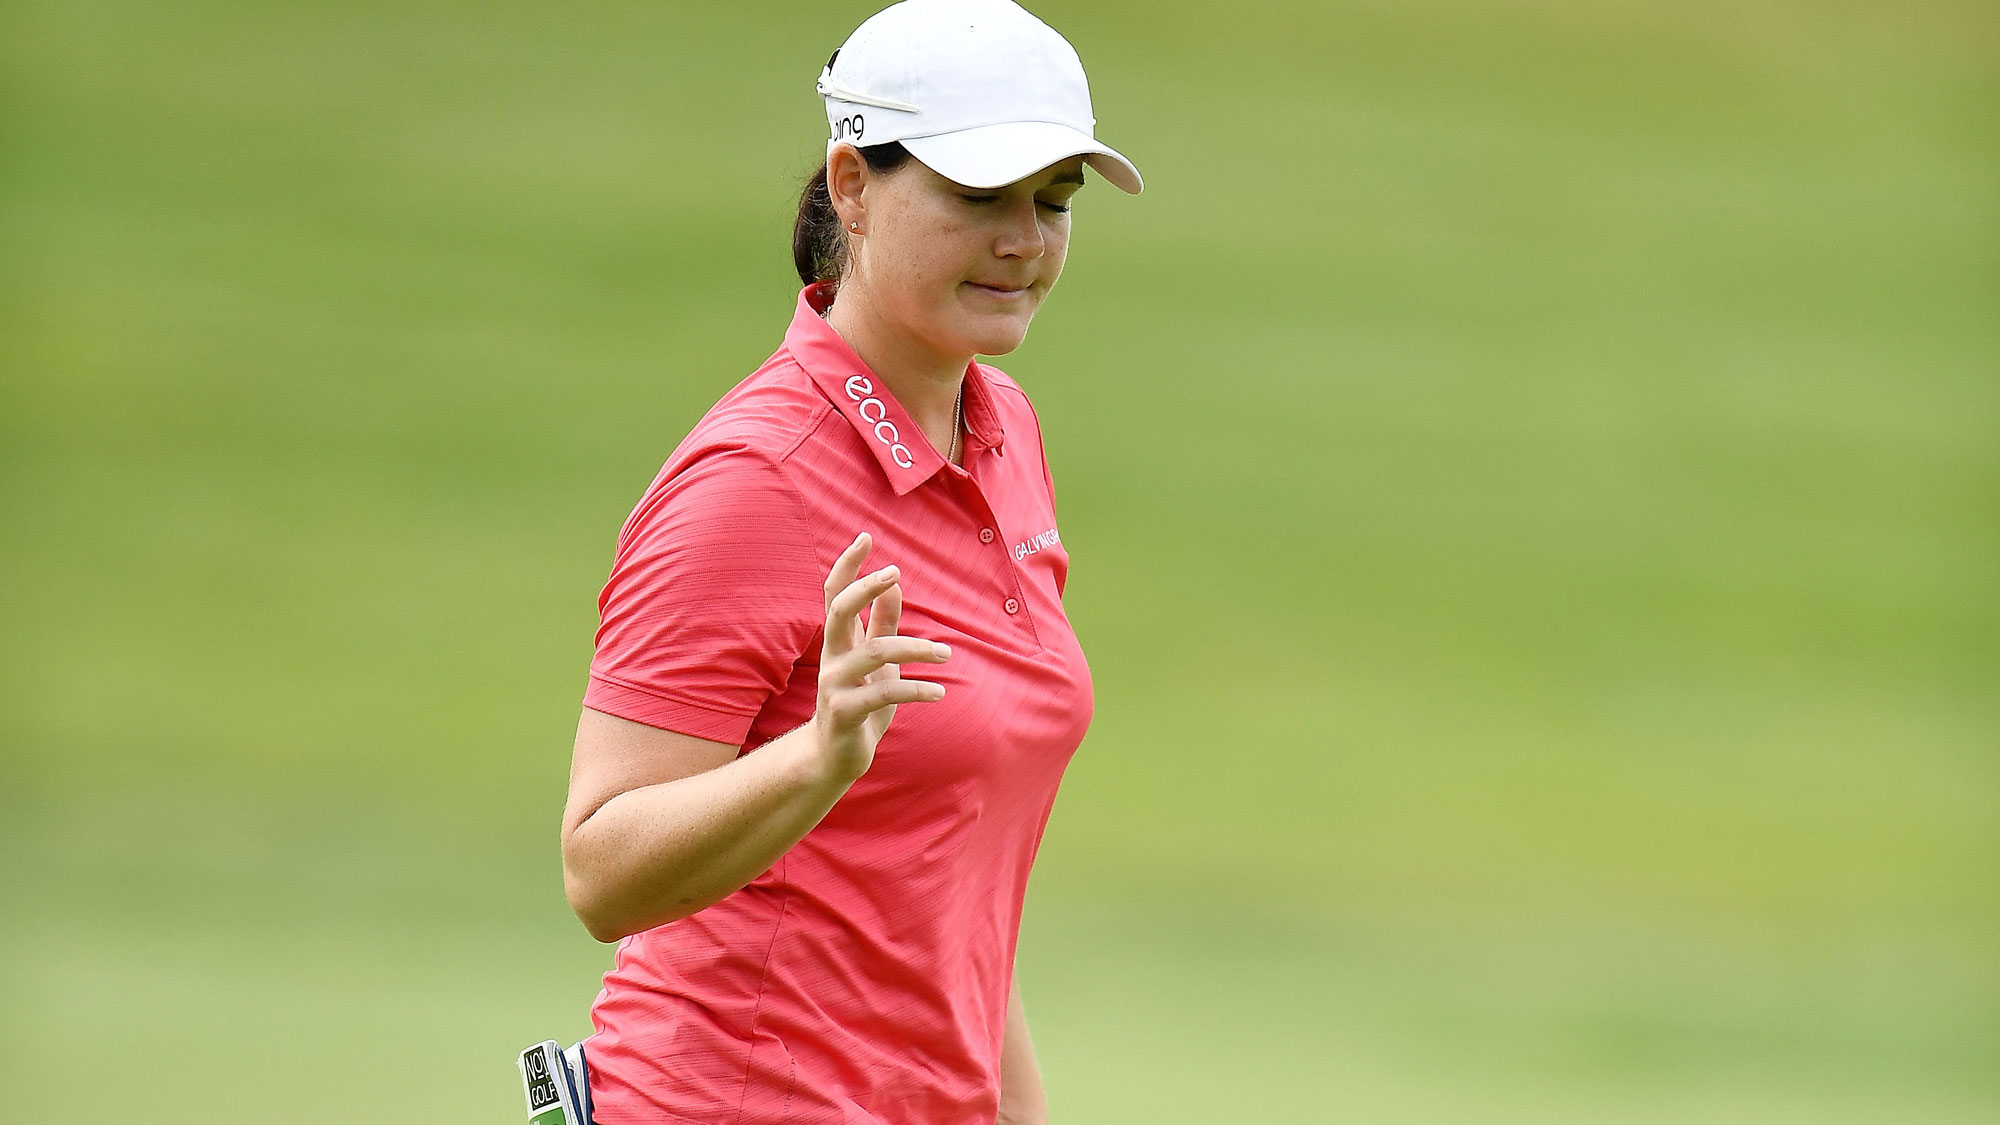 Caroline Masson After a Birdie at the Meijer LPGA Classic